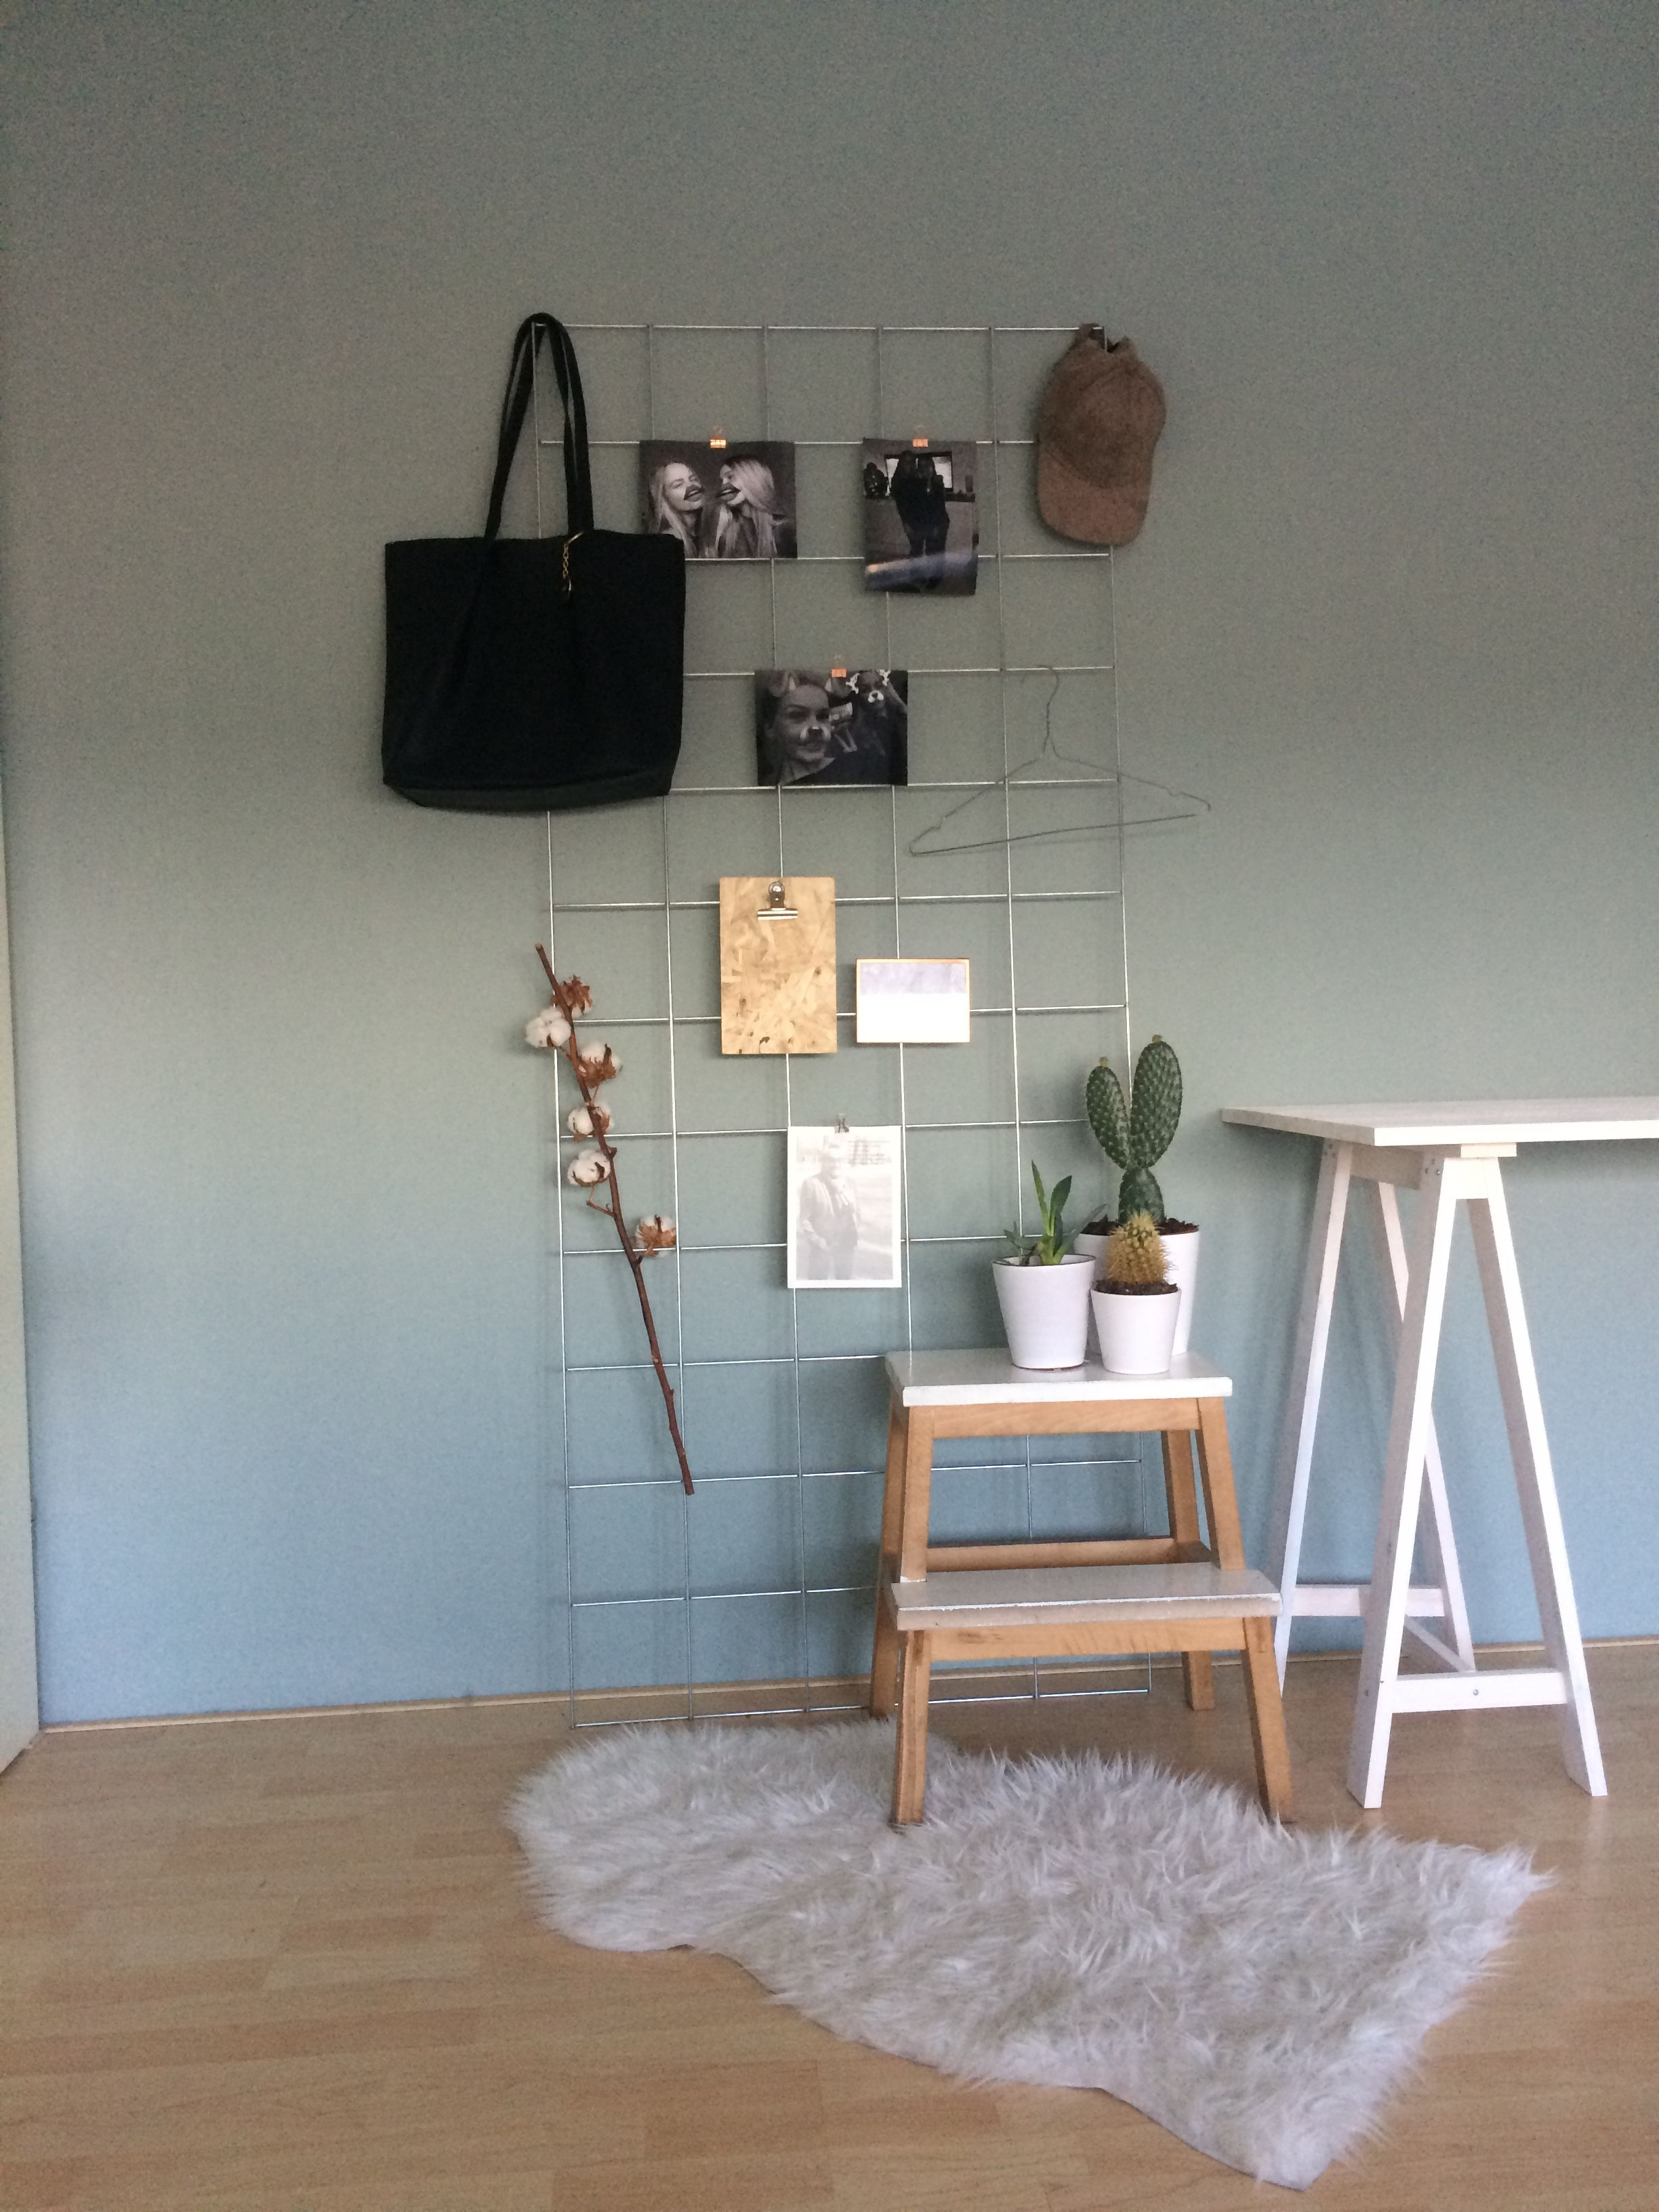 Gaaspaneel Woonkamer Gaaspaneel Tumblr Plants Interieur Home Decor Ladder